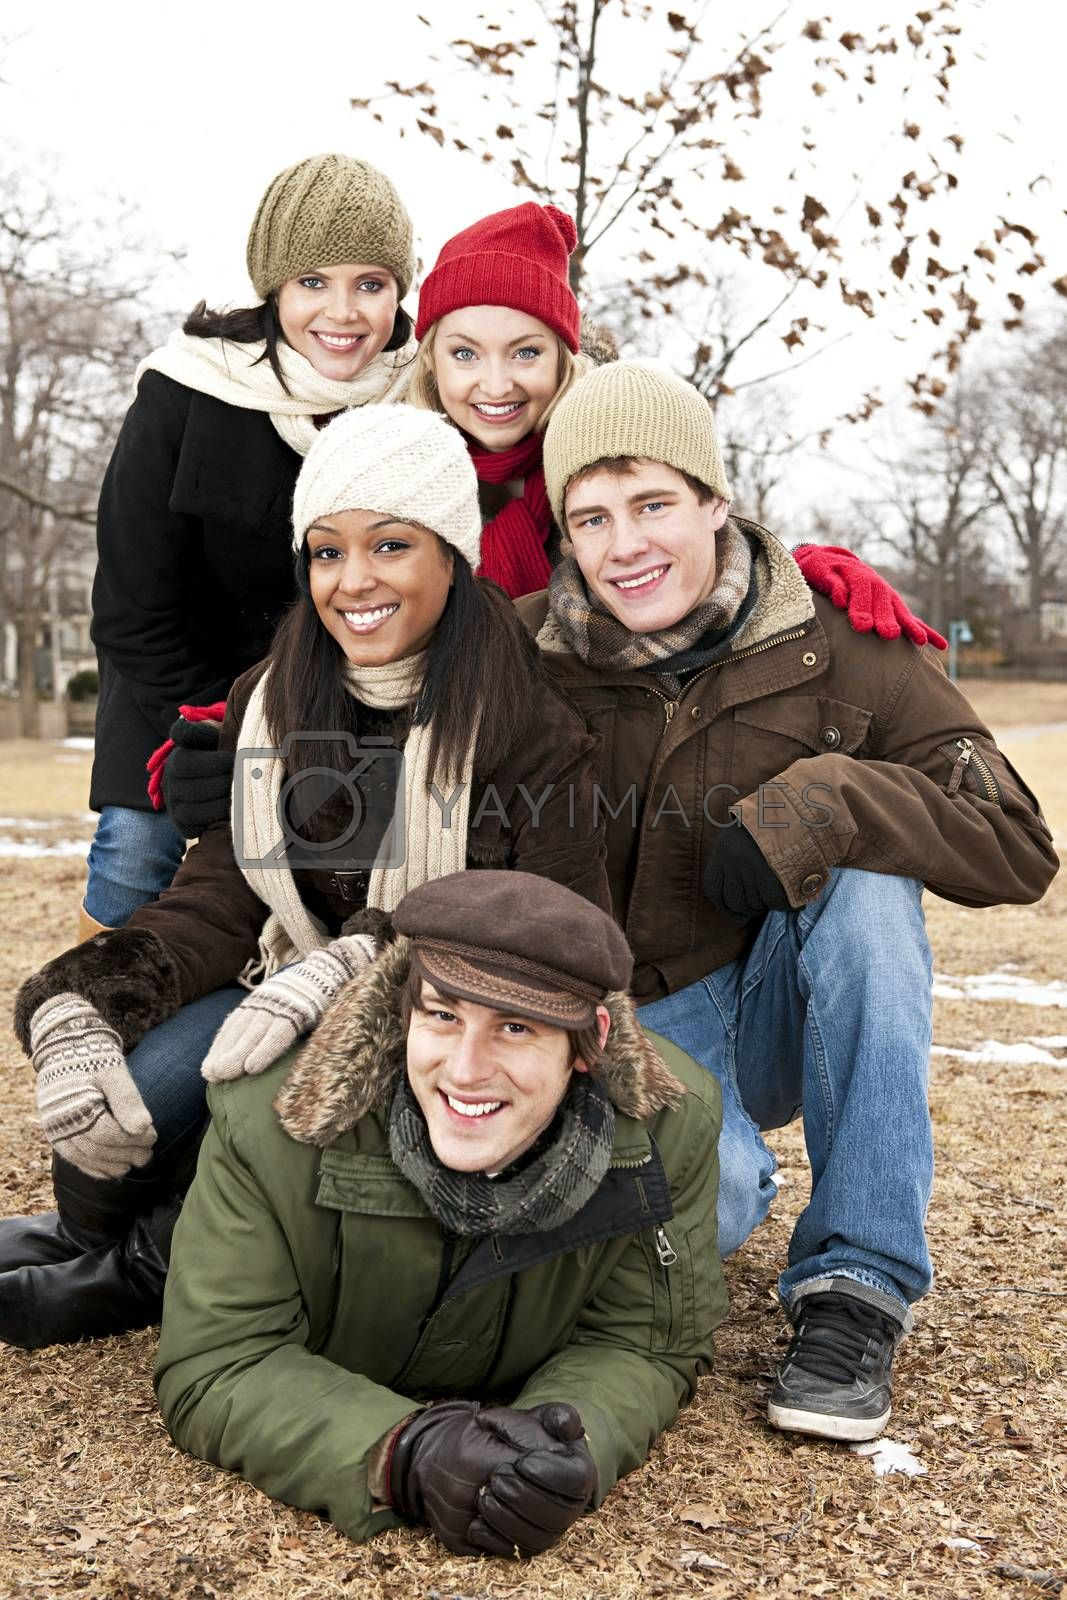 Group of young friends having fun outdoors in winter